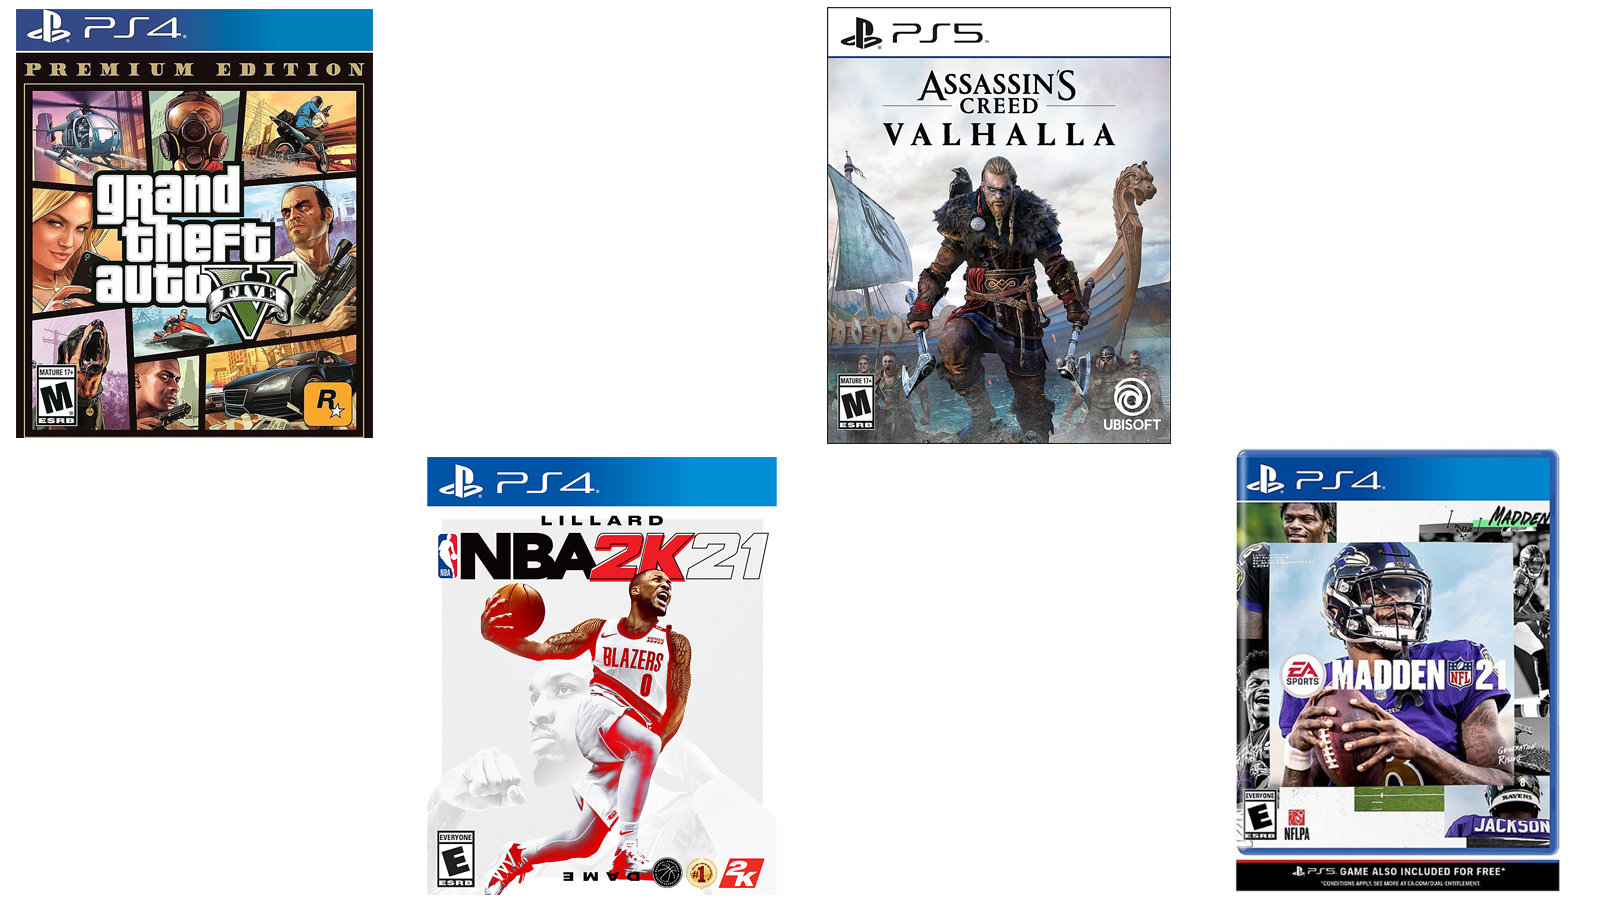 Assorted Video Games